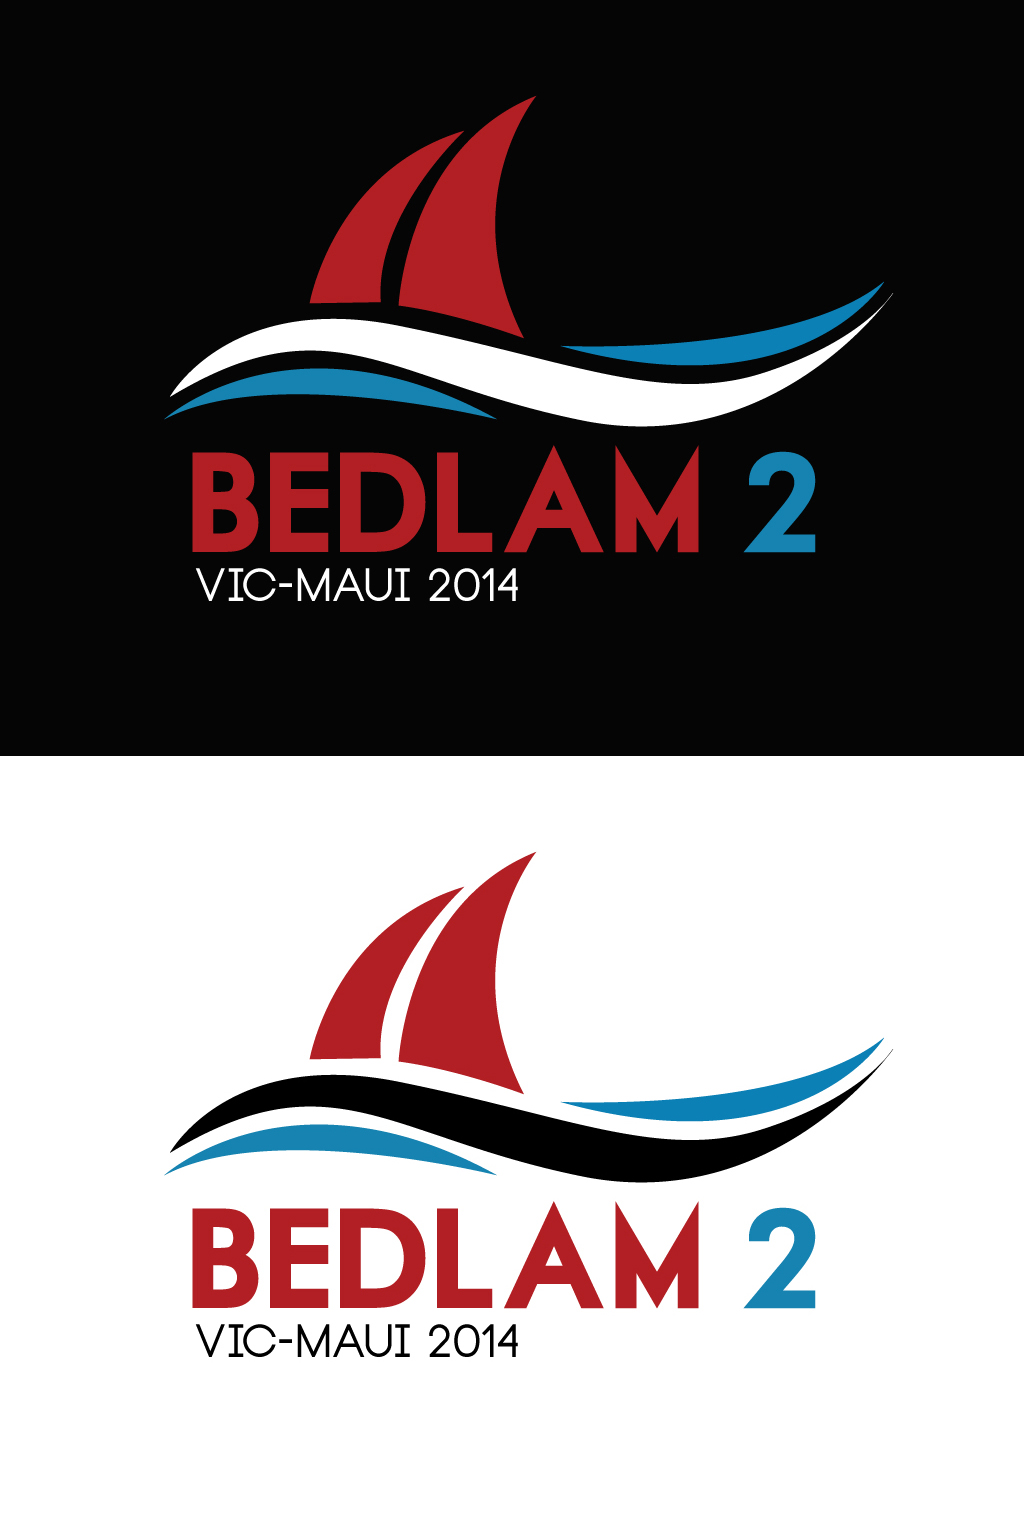 Logo Design by mediaproductionart - Entry No. 18 in the Logo Design Contest Artistic Logo Design for Bedlam 2  Vic-Maui 2014.